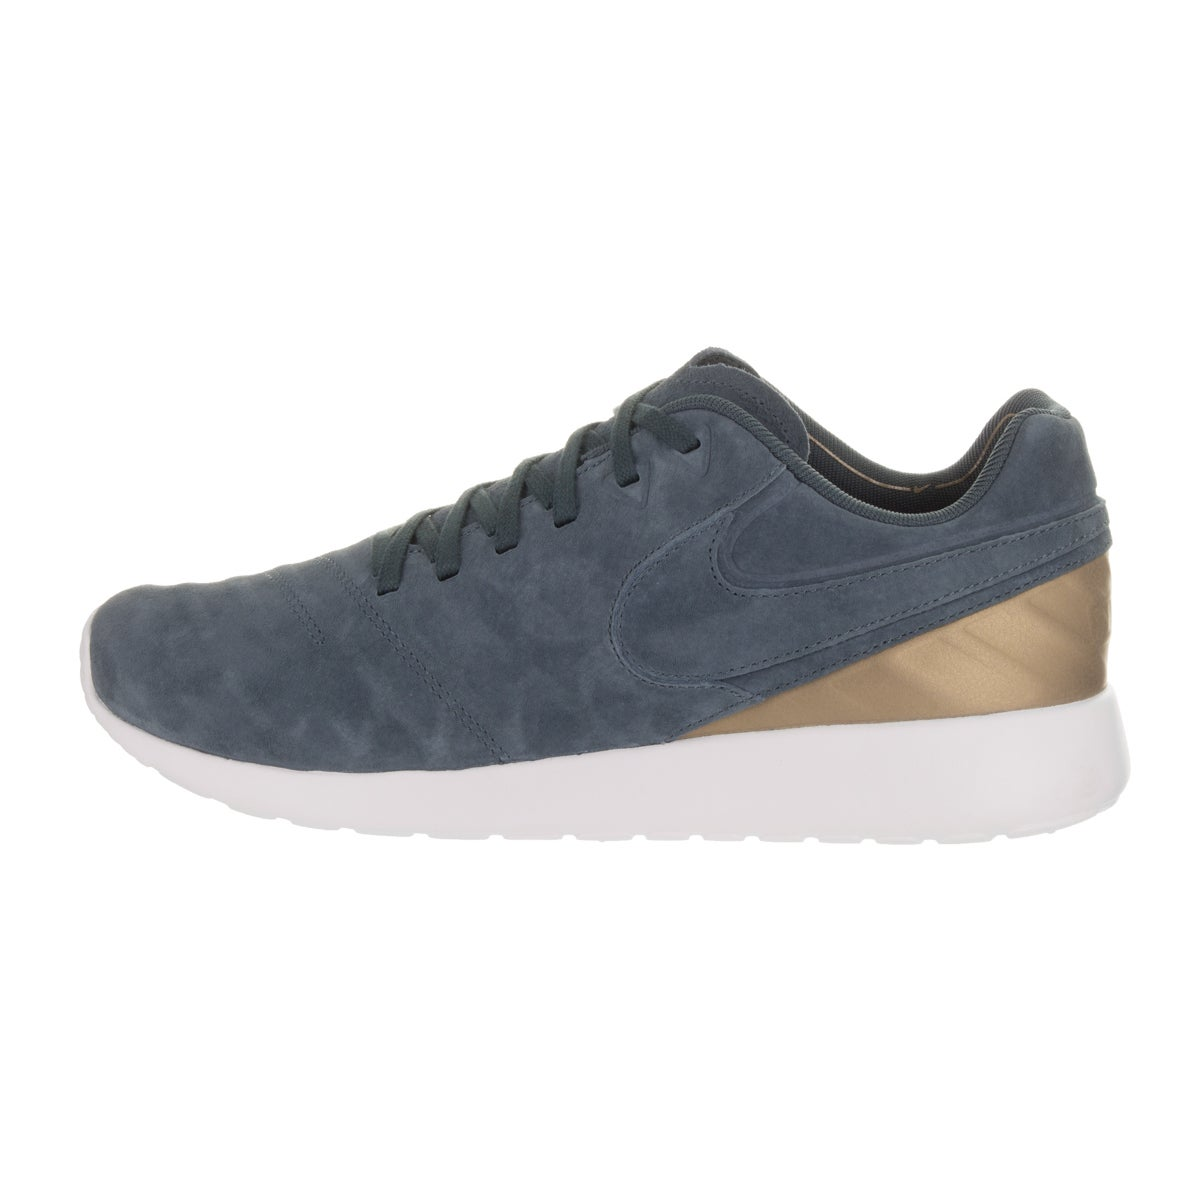 40c1942921c Shop Nike Men s Roshe Tiempo VI FC Casual Shoe - Free Shipping Today -  Overstock - 15315571